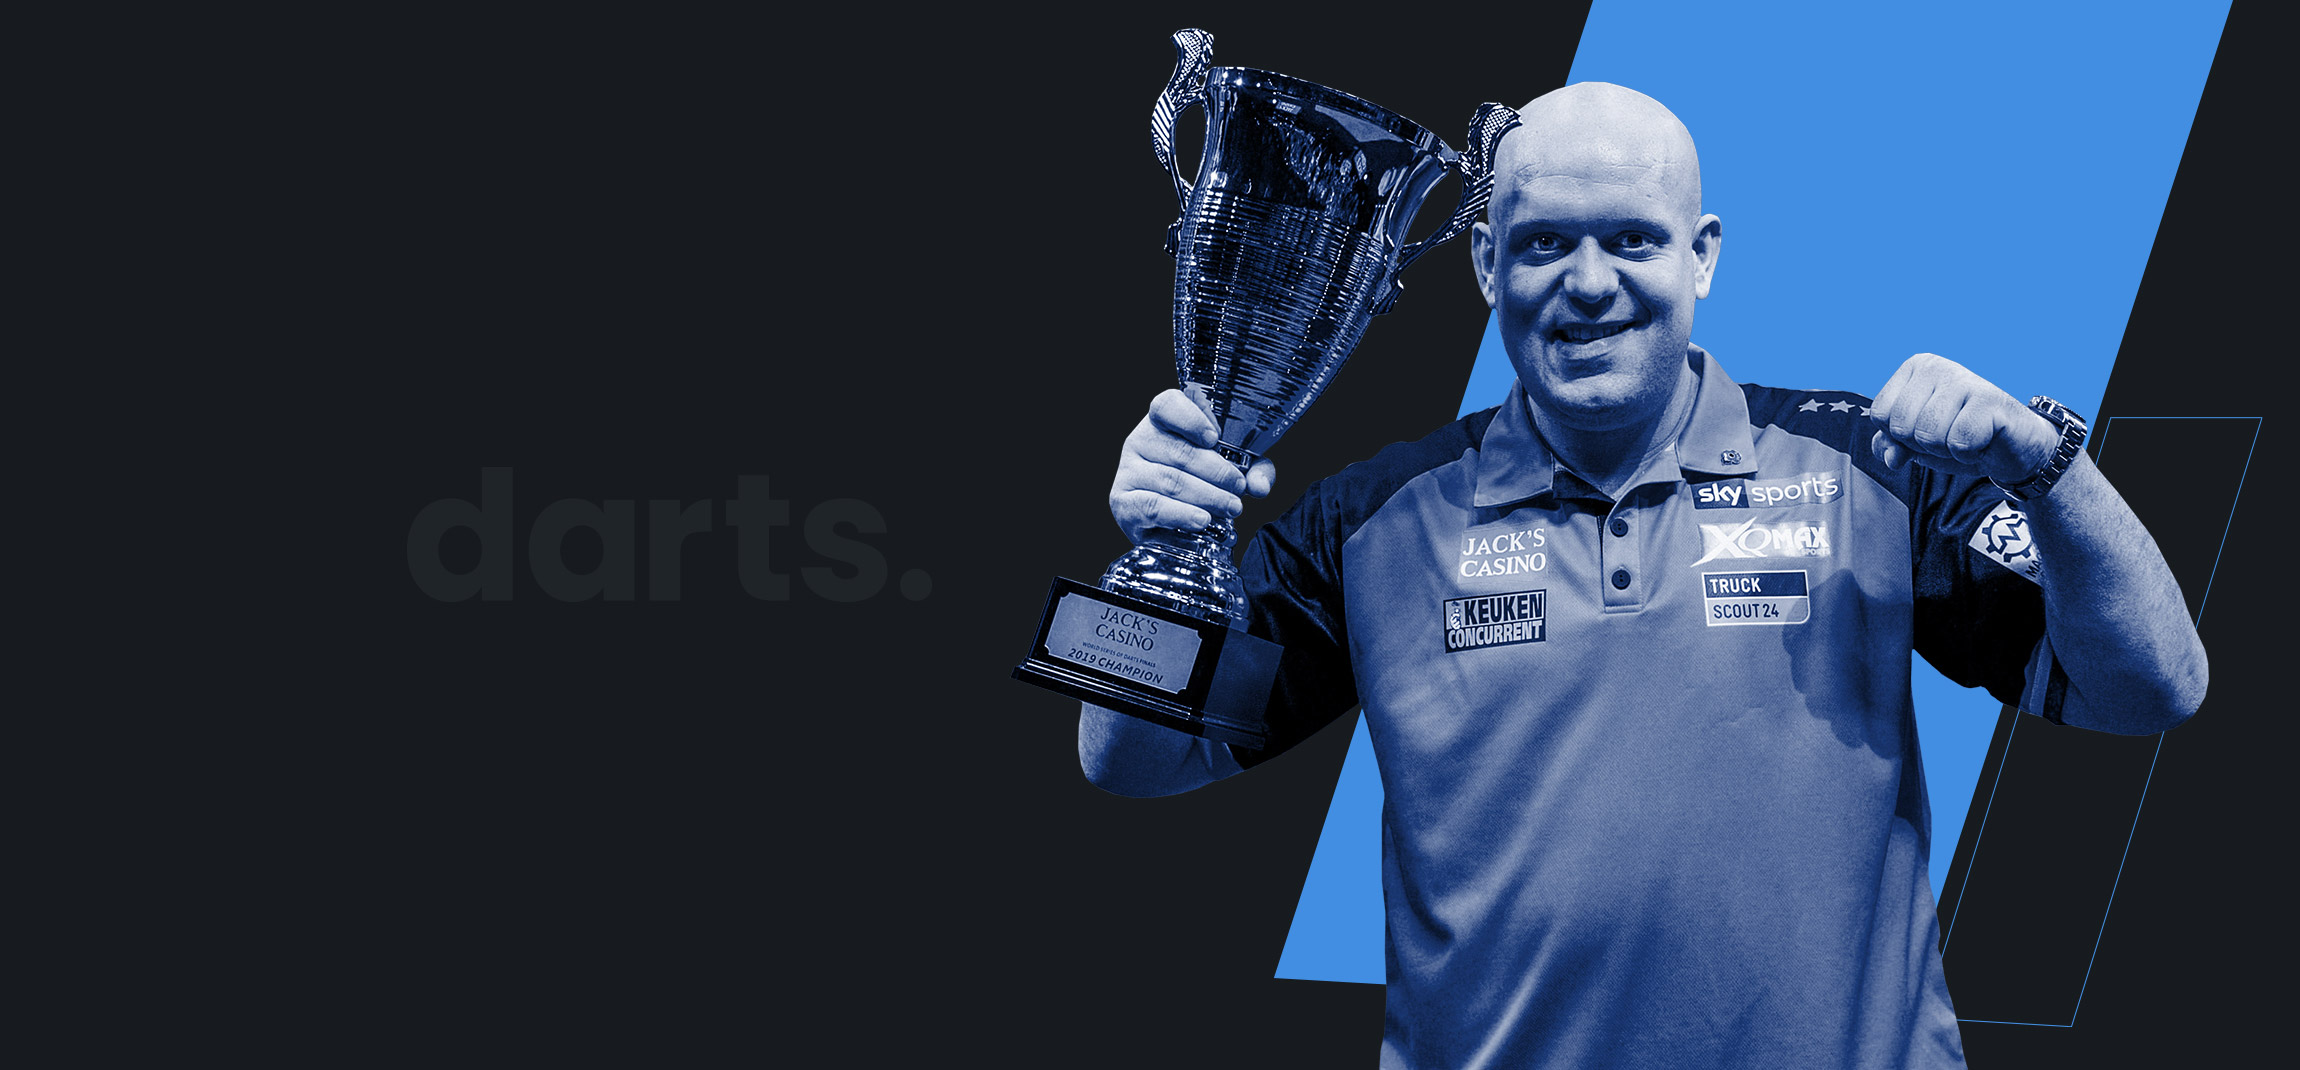 We are Matchroom Sport - We are World Darts Championship